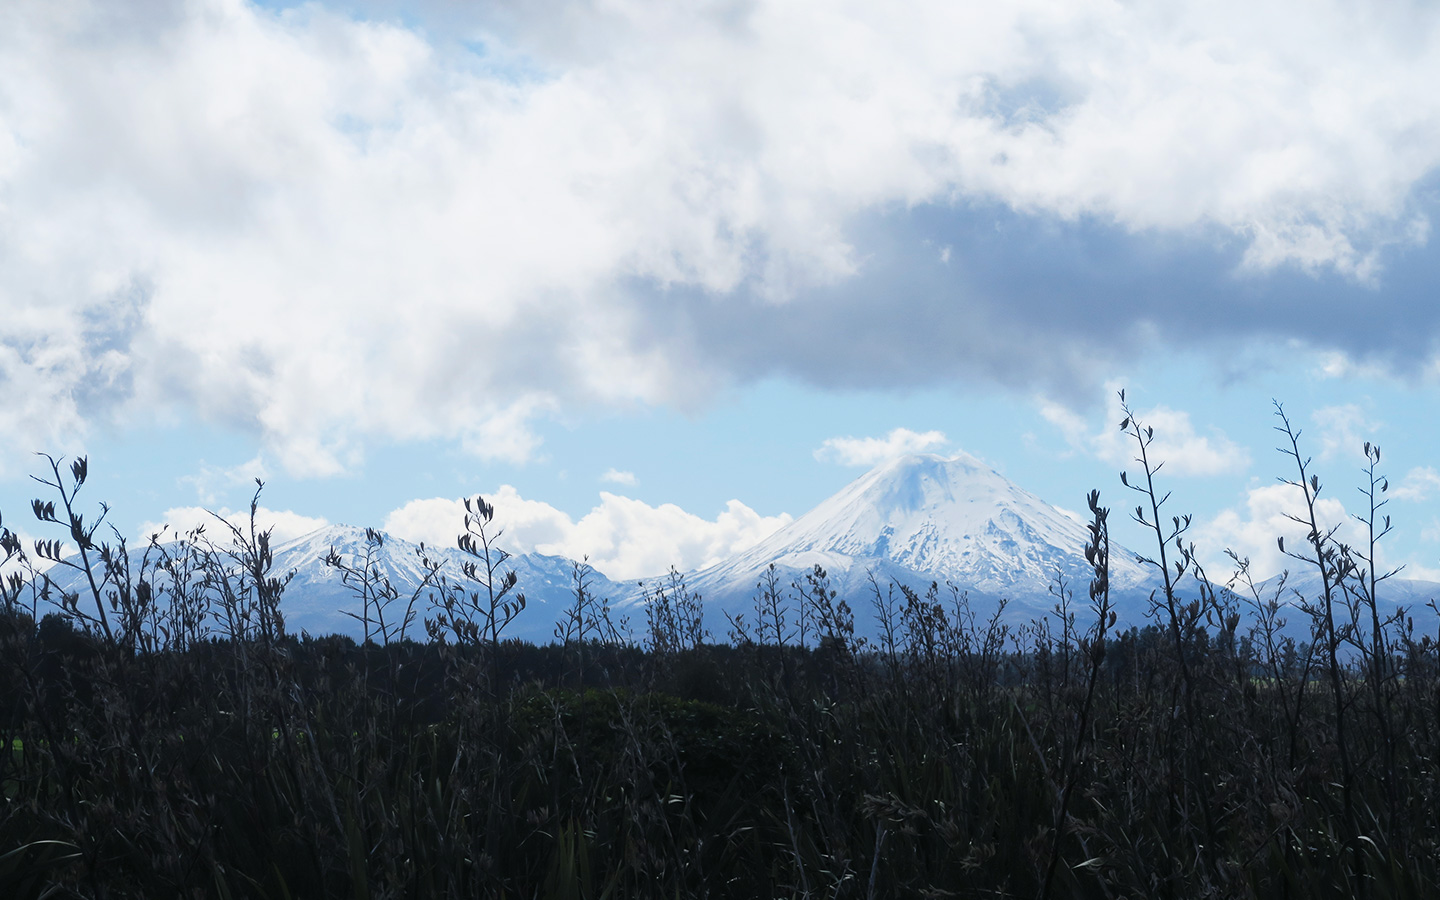 long distance shot of mount tongariro with snow